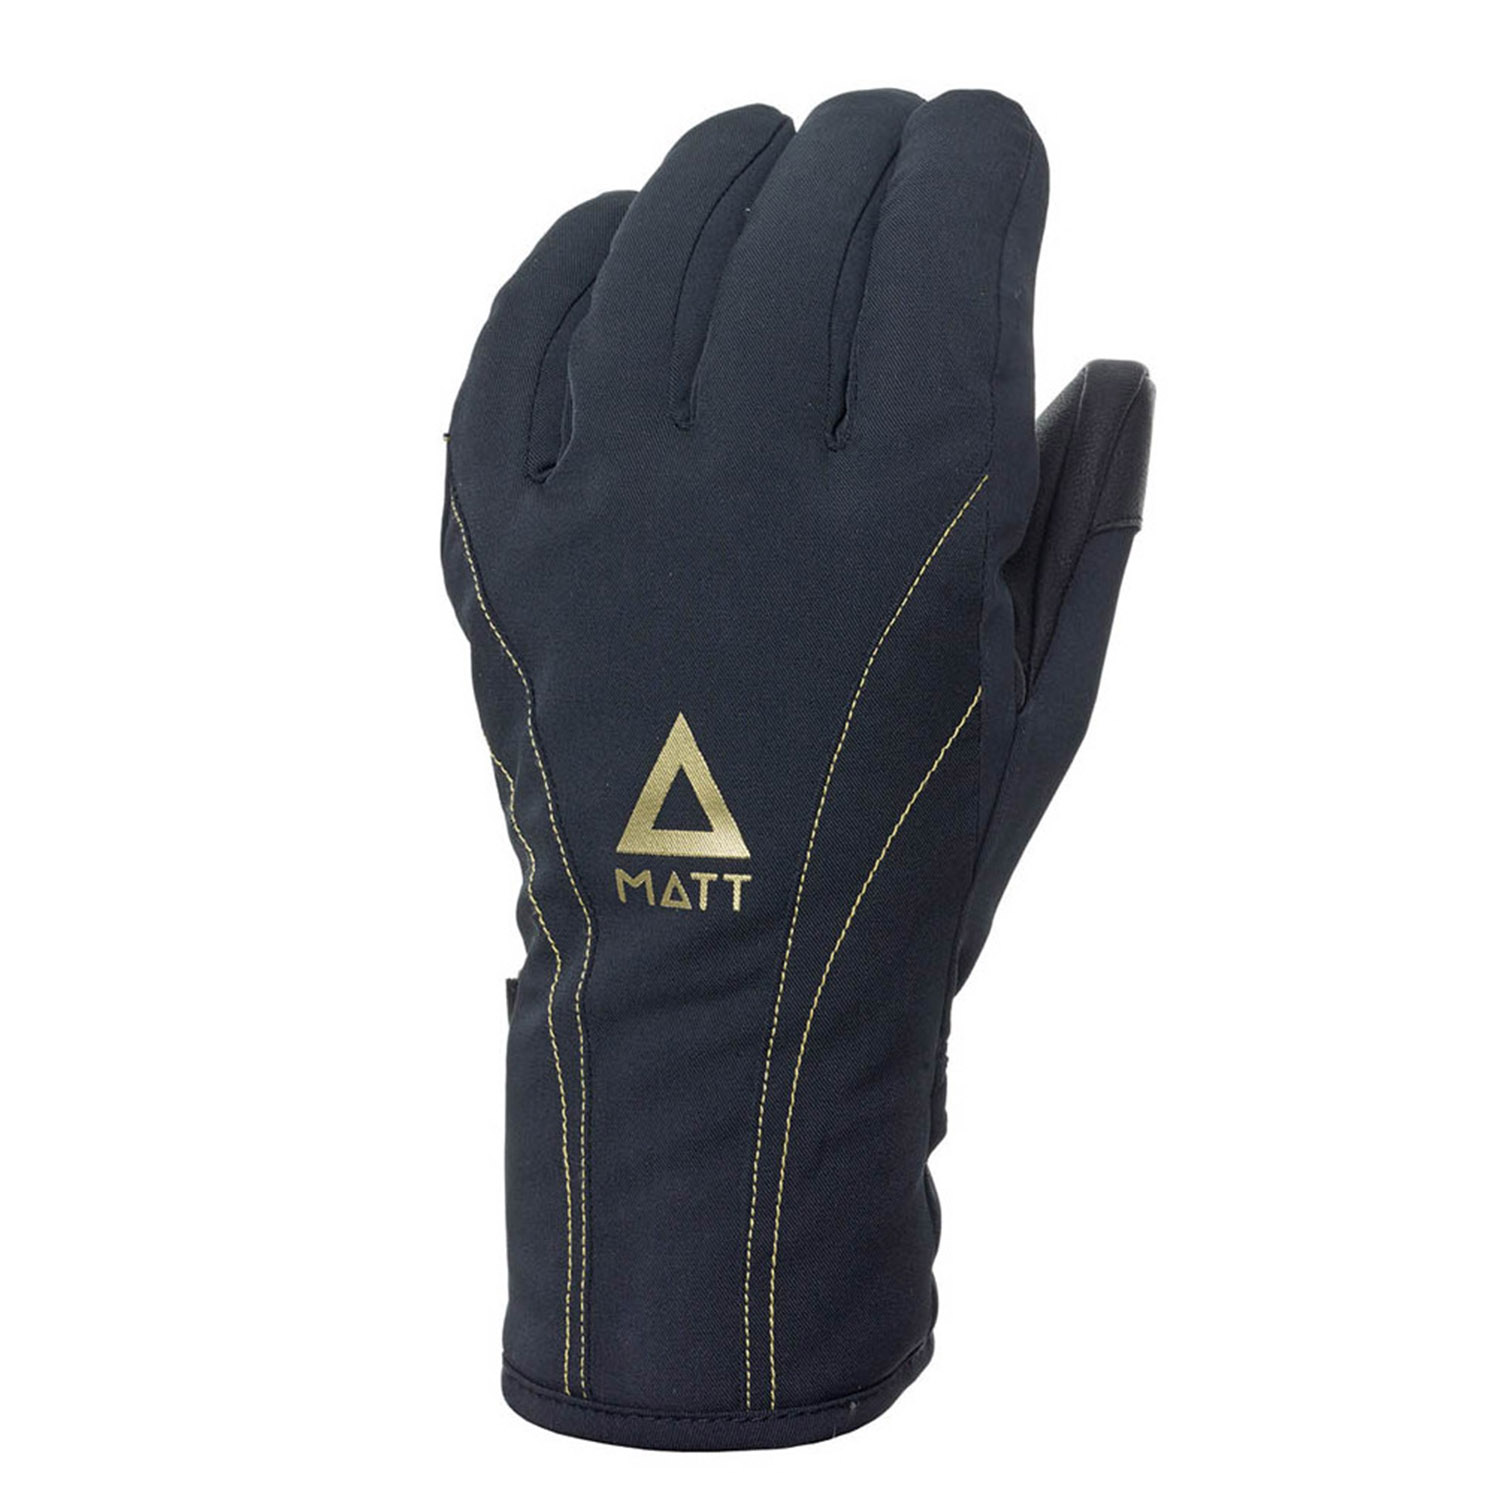 MATT TOOTEX GLOVES 3231JR Junior Γάντια σκι-Mαύρο